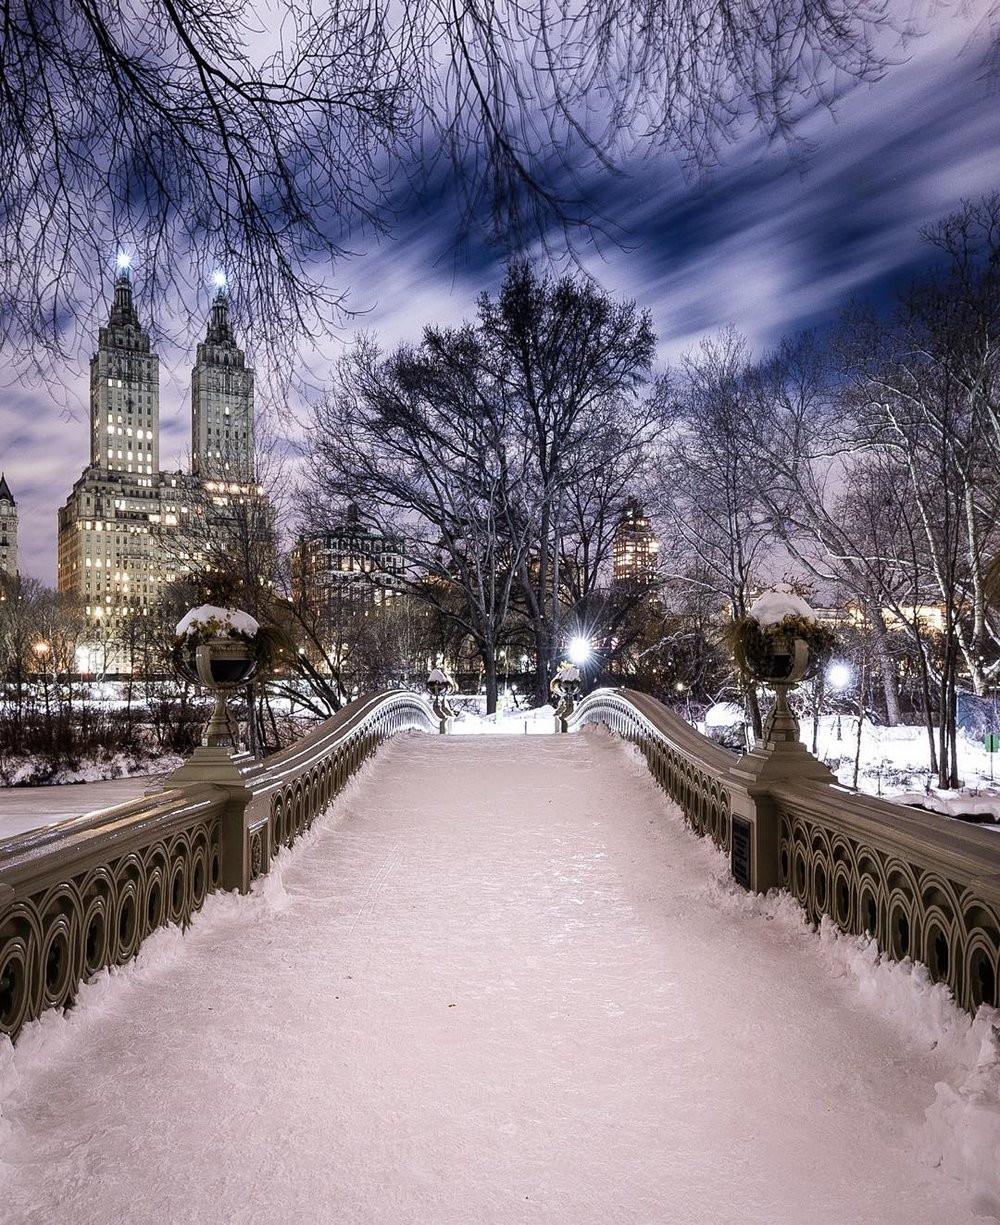 My Central Park NYC #MyCentralPark1680791592_00a66465-9c0e-40be-bf59-4f2bfe862885.jpg